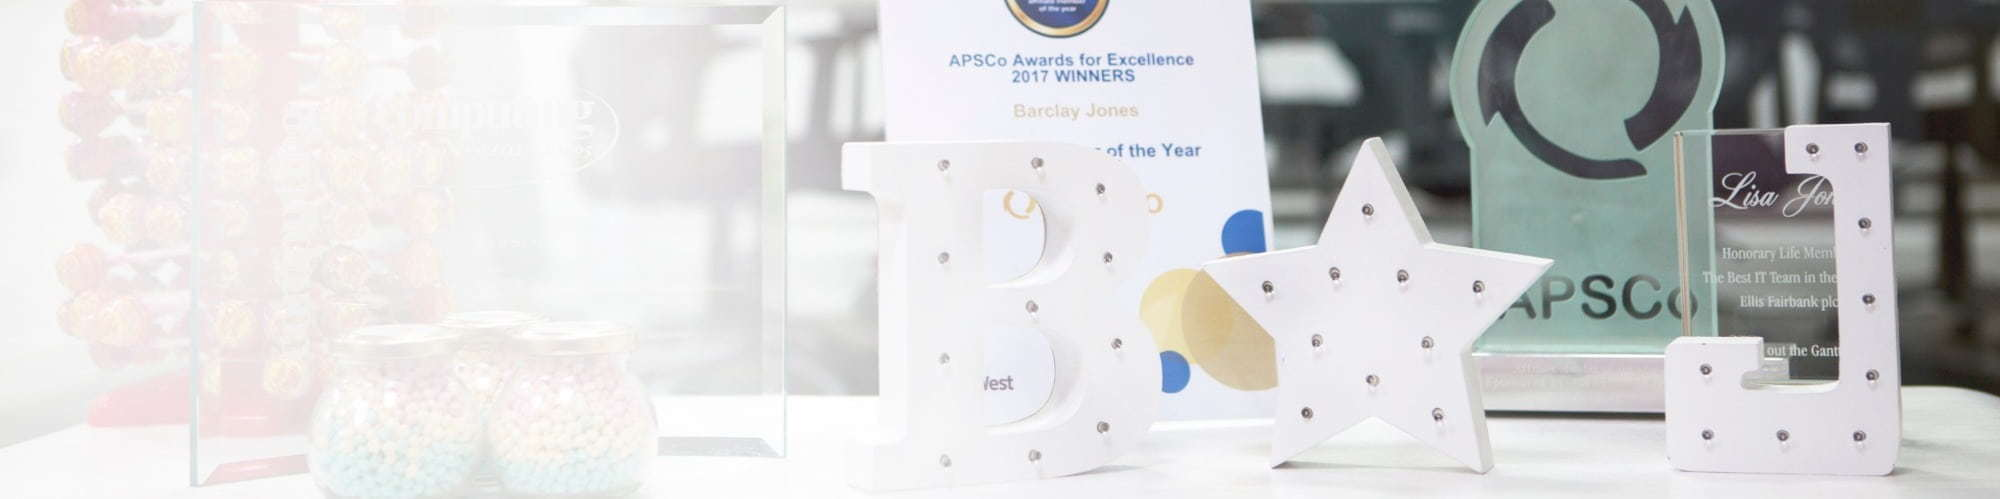 recruitment-awards-apsco-awards-for-excellence